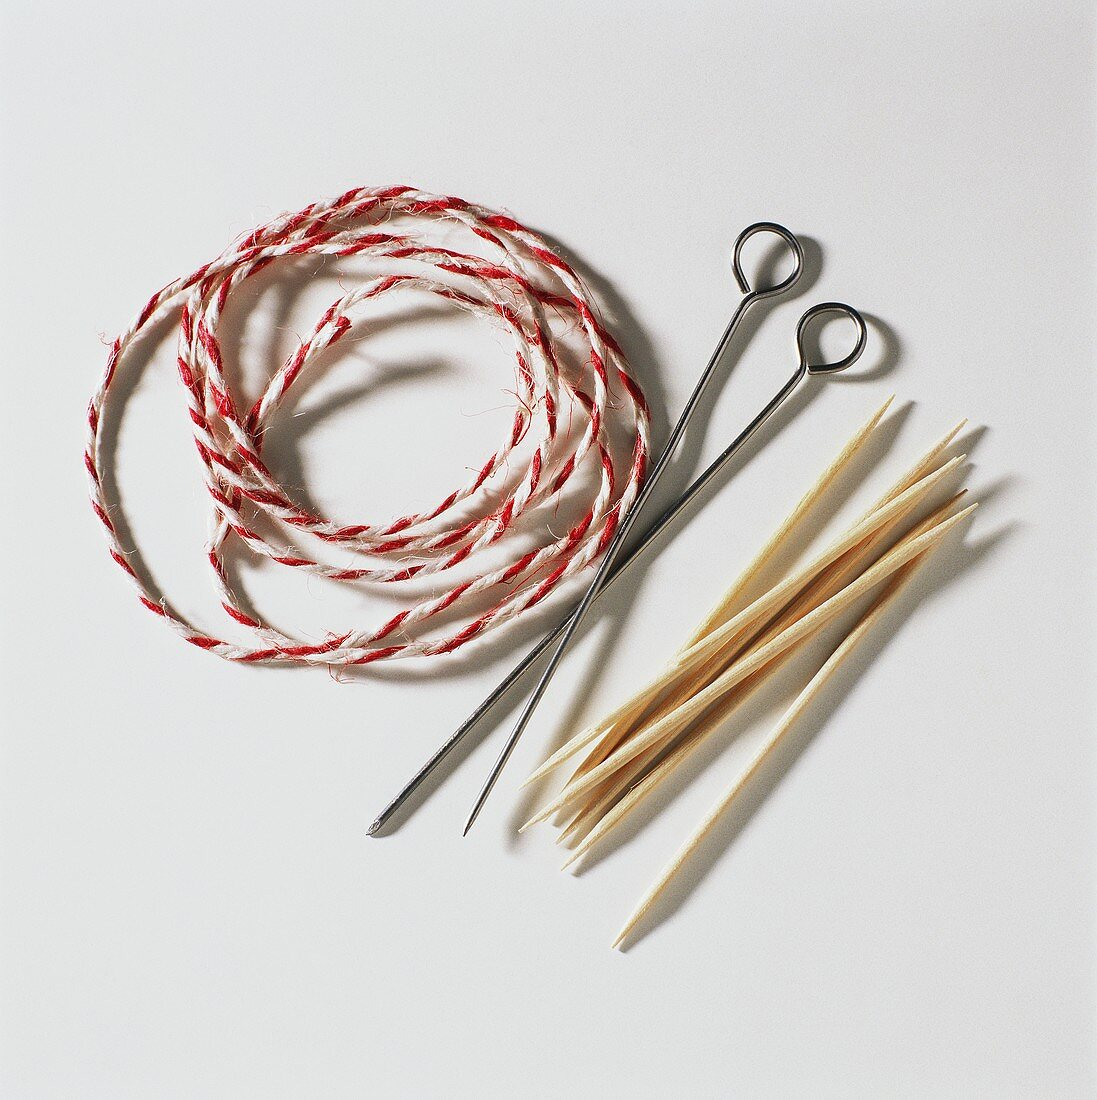 Wooden skewers, roulade needles and string